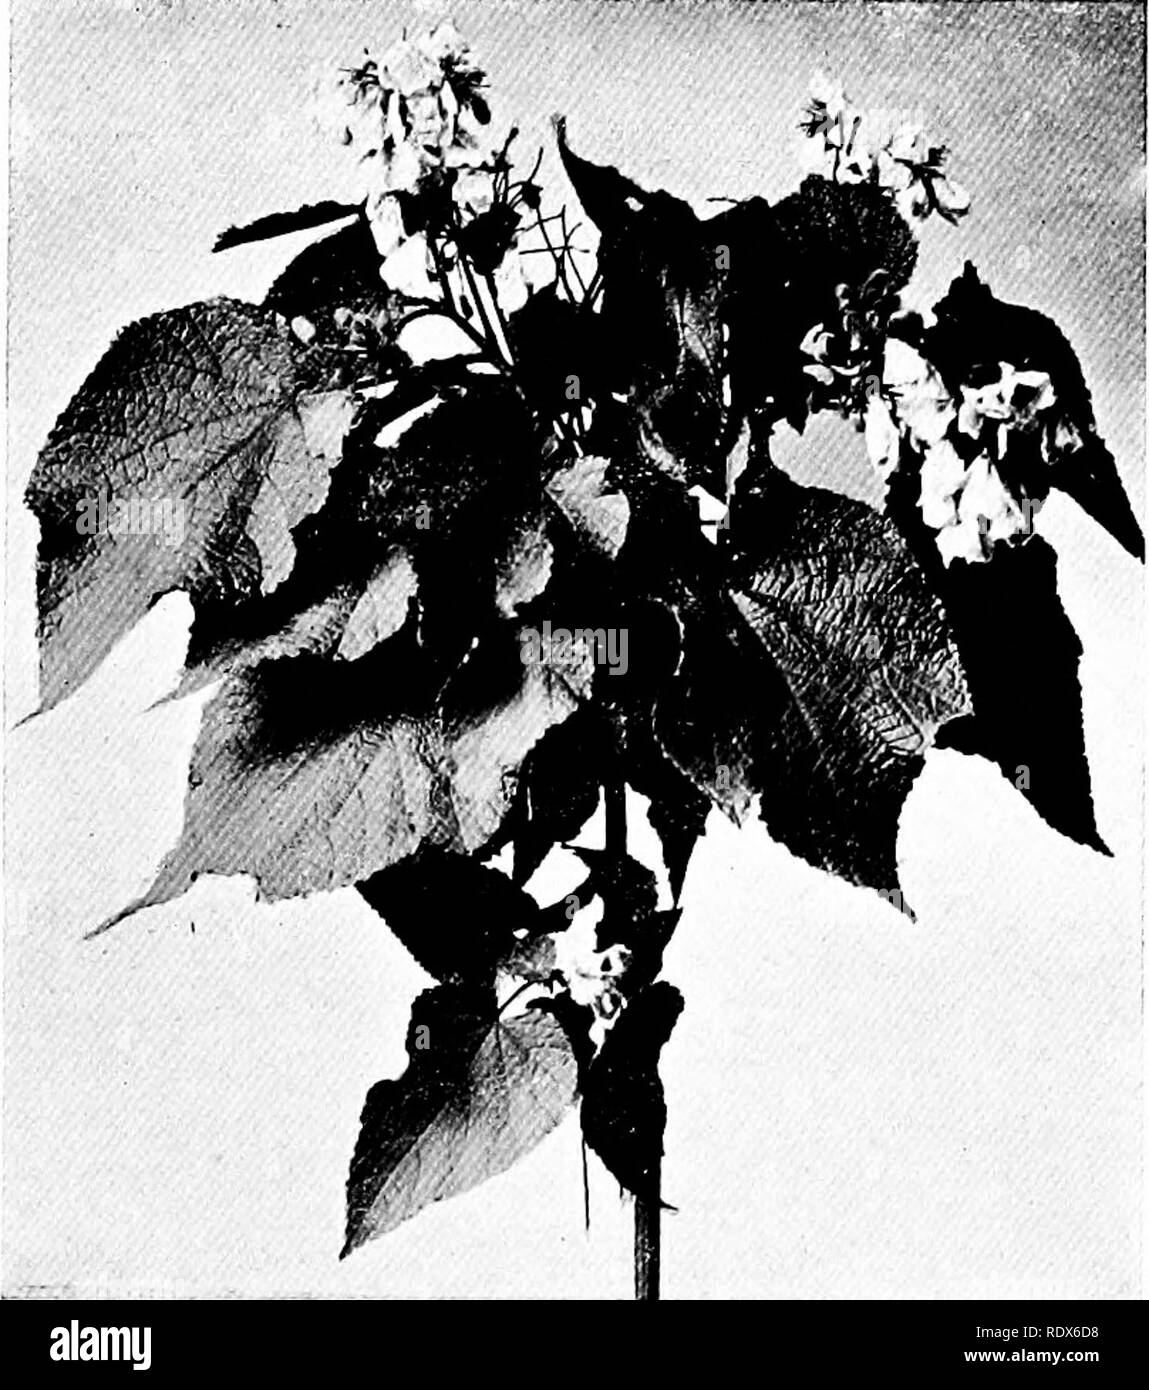 """. The flora of the Algeria. Botany. """"Wigandia ,Vigieri NO — Hydrophyllaceee Tall herbs with large hairy leaves and dark blue flowers.. Sparmannia Africana NO— Tiliaceas Handsome shrub or small tree with conspicuous white Howers. (82.). Please note that these images are extracted from scanned page images that may have been digitally enhanced for readability - coloration and appearance of these illustrations may not perfectly resemble the original work.. Gubb, Alfred S. (Alfred Samuel), 1857-. Alger, Imprimerie Alge?rienne; London, Ballie?re, Tindall & Cox - Stock Image"""